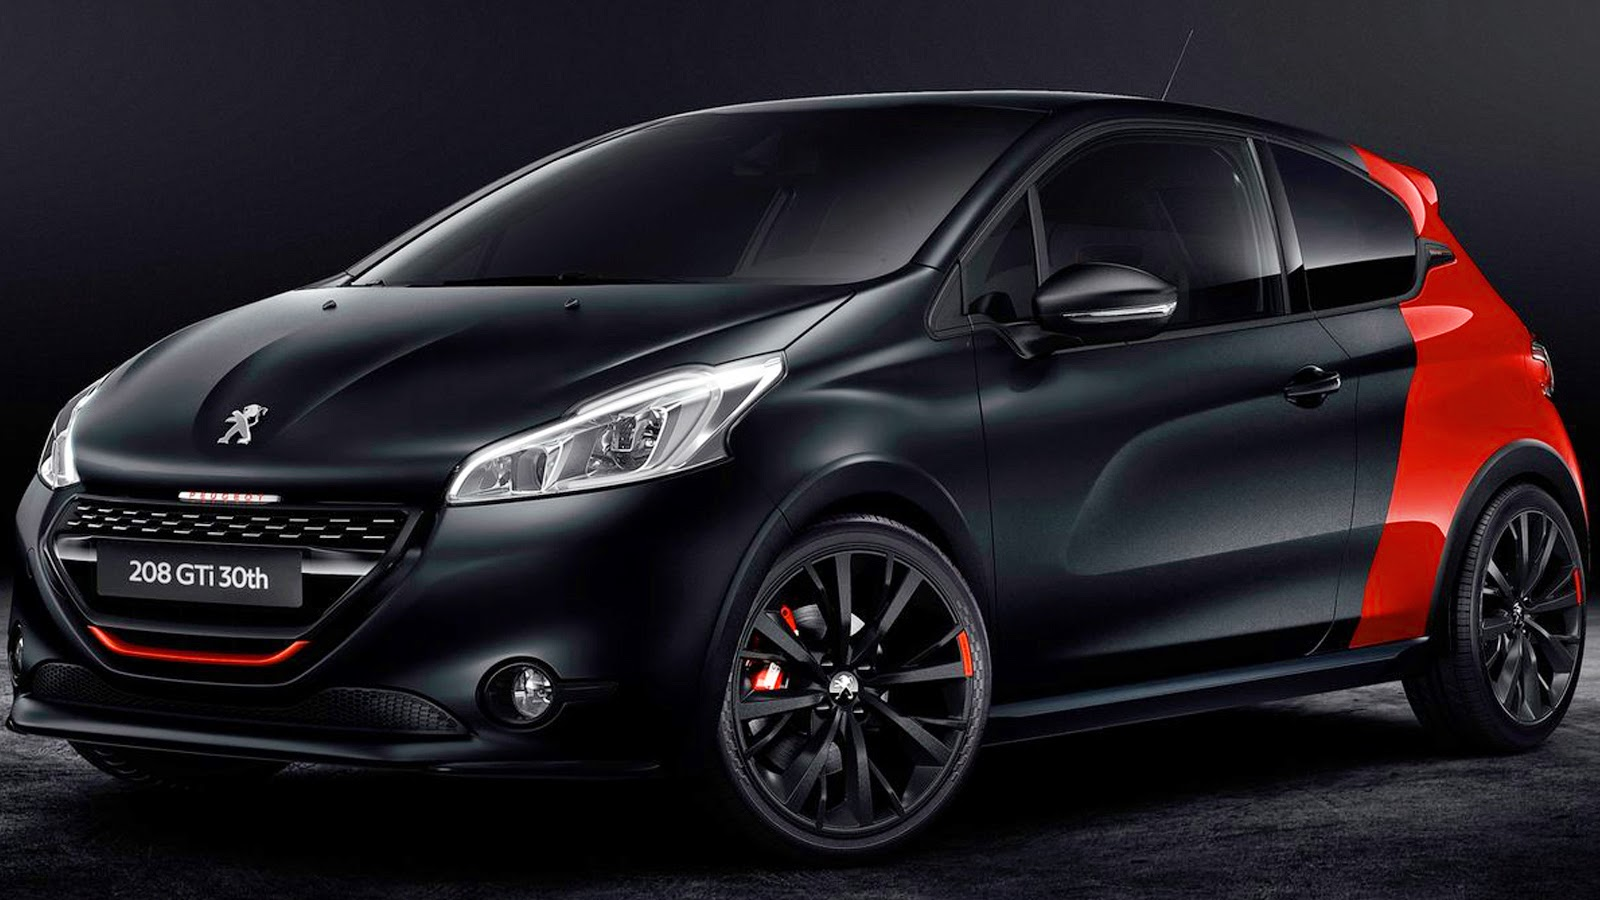 peugeot 208 gti 30th anniversary edition 2015 aro 18 1 6 thp turbo 208 cv 30 6 mkgf 0 100 kmh 6. Black Bedroom Furniture Sets. Home Design Ideas